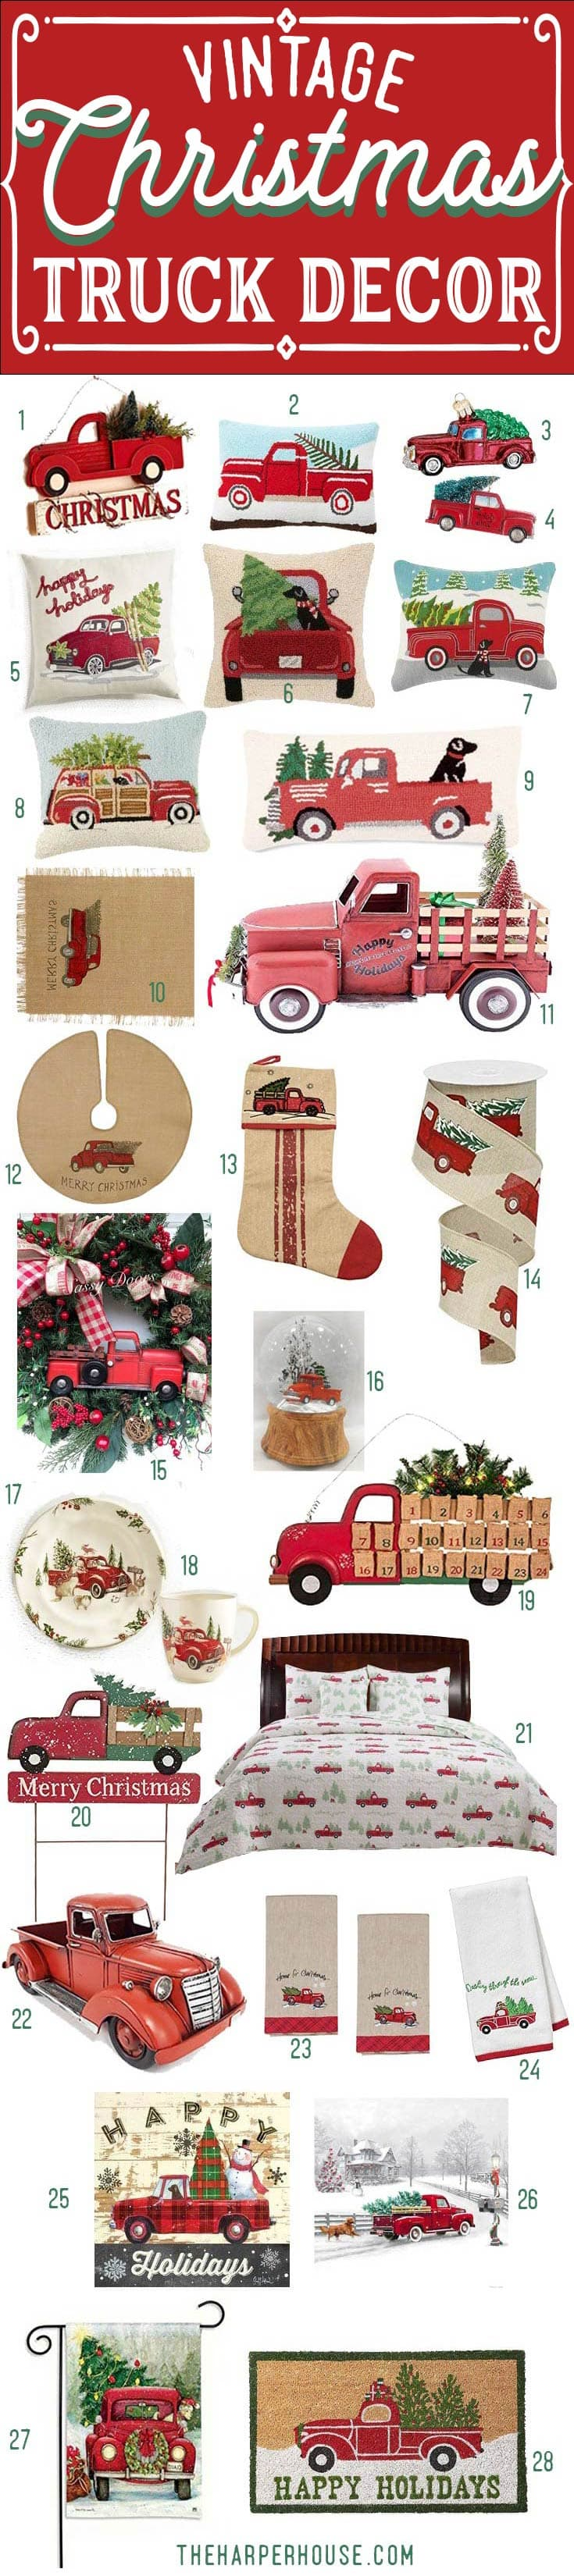 vintage red truck with christmas tree decor perfect for your farmhouse christmas decorations farmhouse - Red Truck Christmas Decor